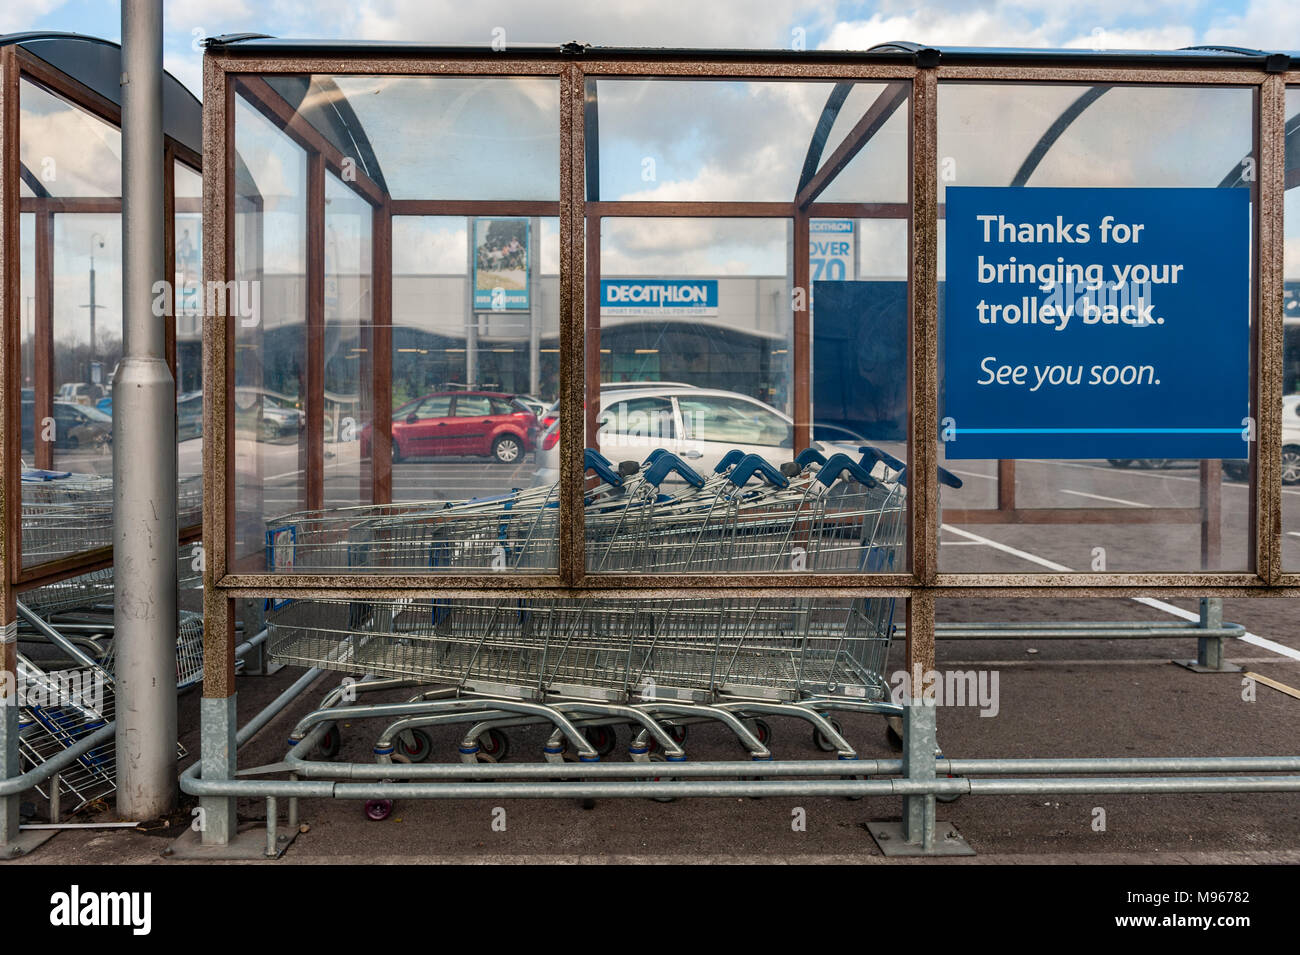 Trolley Park at Arena Park Shopping Centre, Coventry, UK. Stock Photo